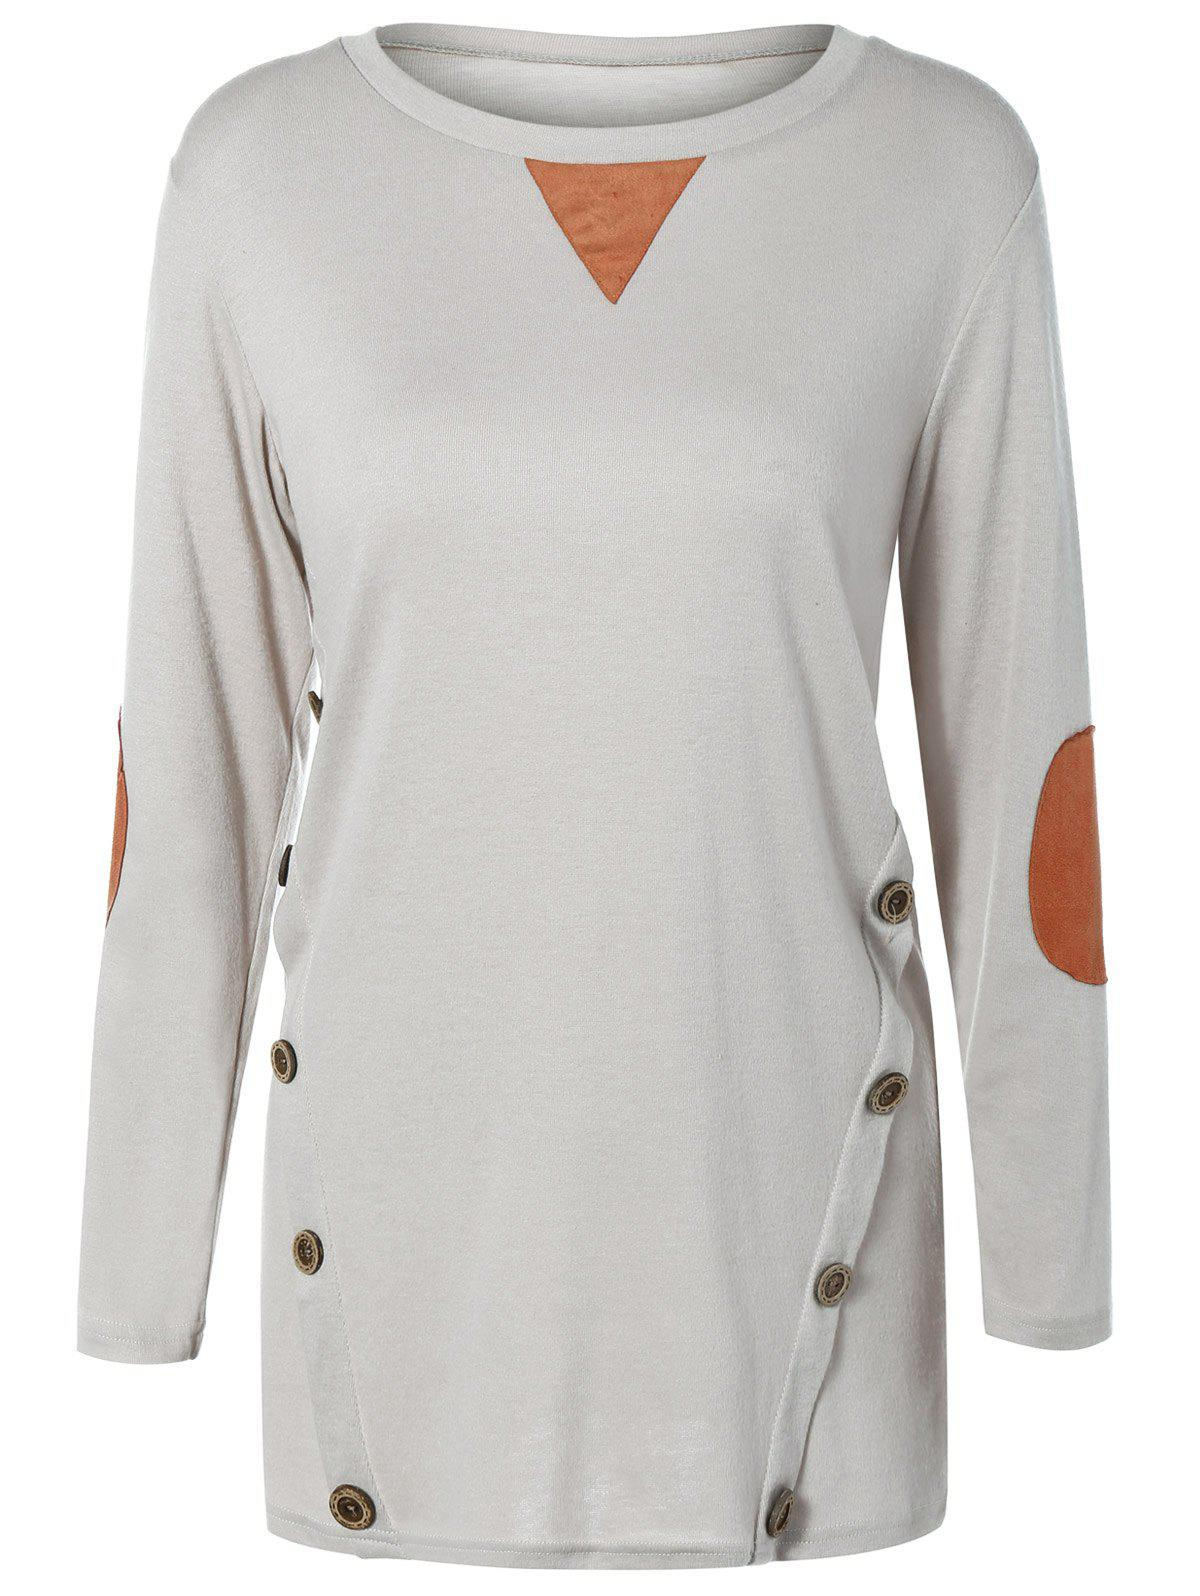 Button Longline T-Shirt with Elbow PatchWomen<br><br><br>Size: 2XL<br>Color: LIGHT GRAY